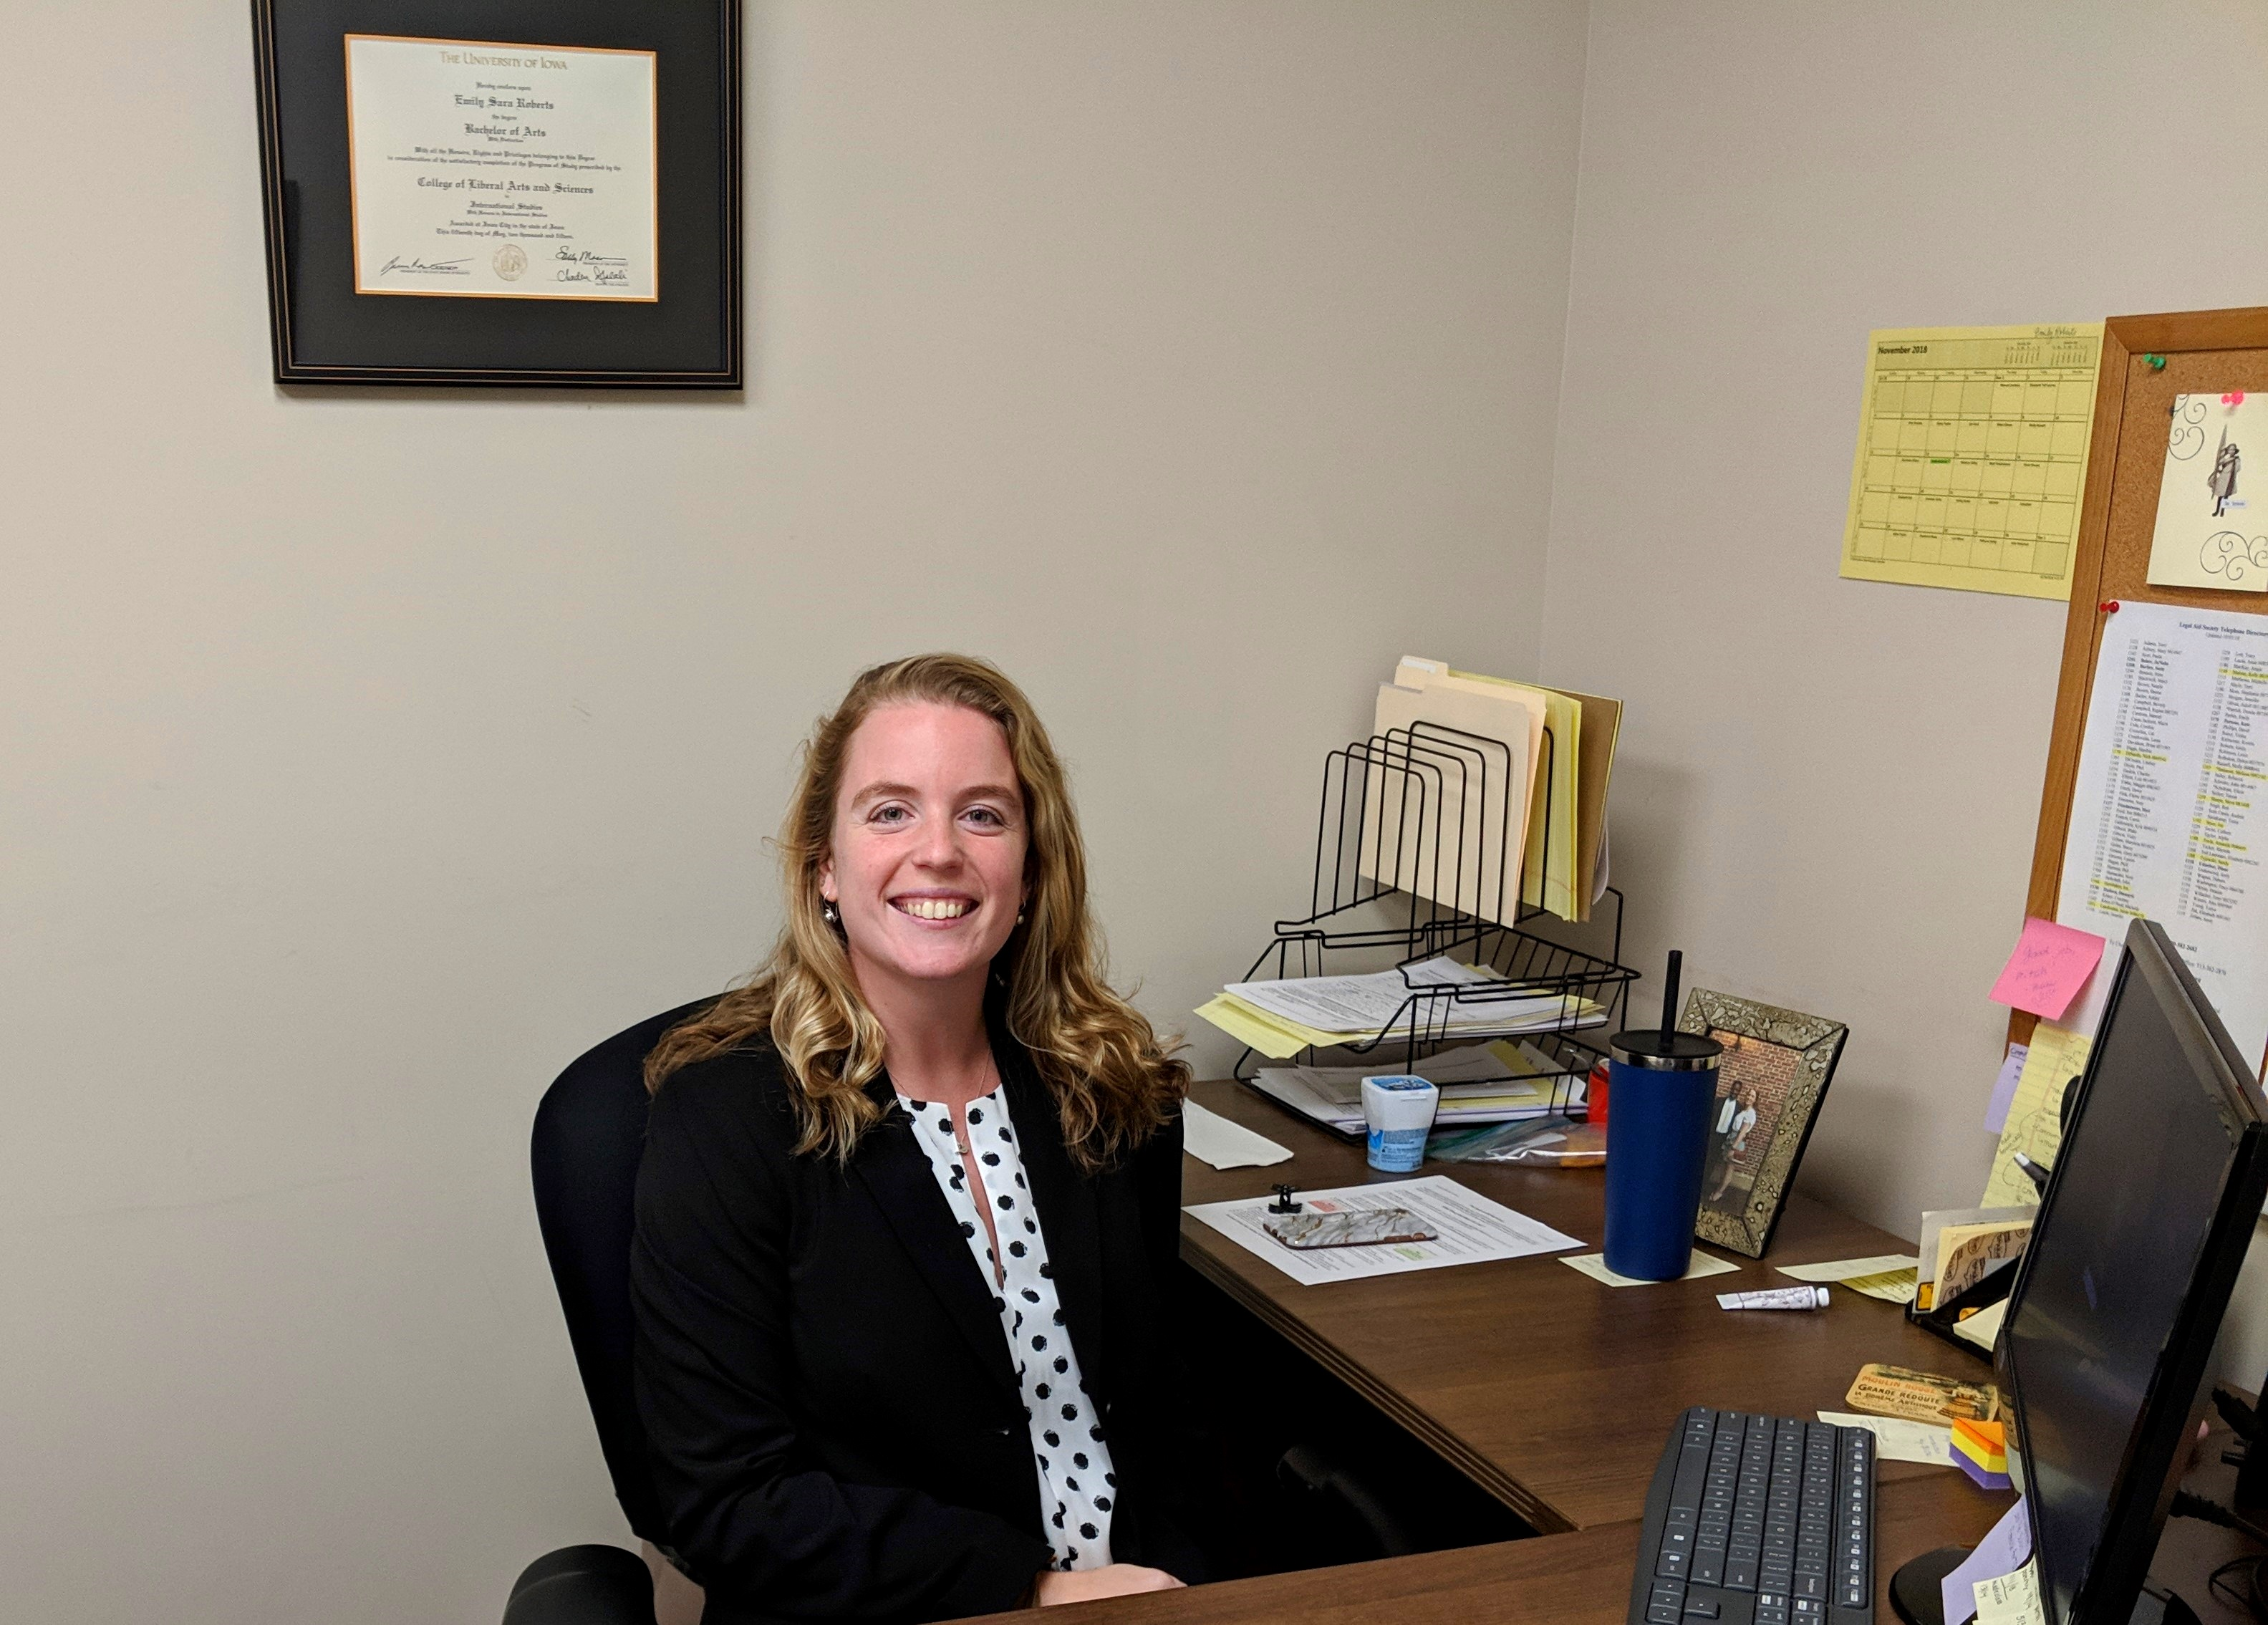 Emily Roberts provides legal assistance to clients facing domestic violence and housing insecurity